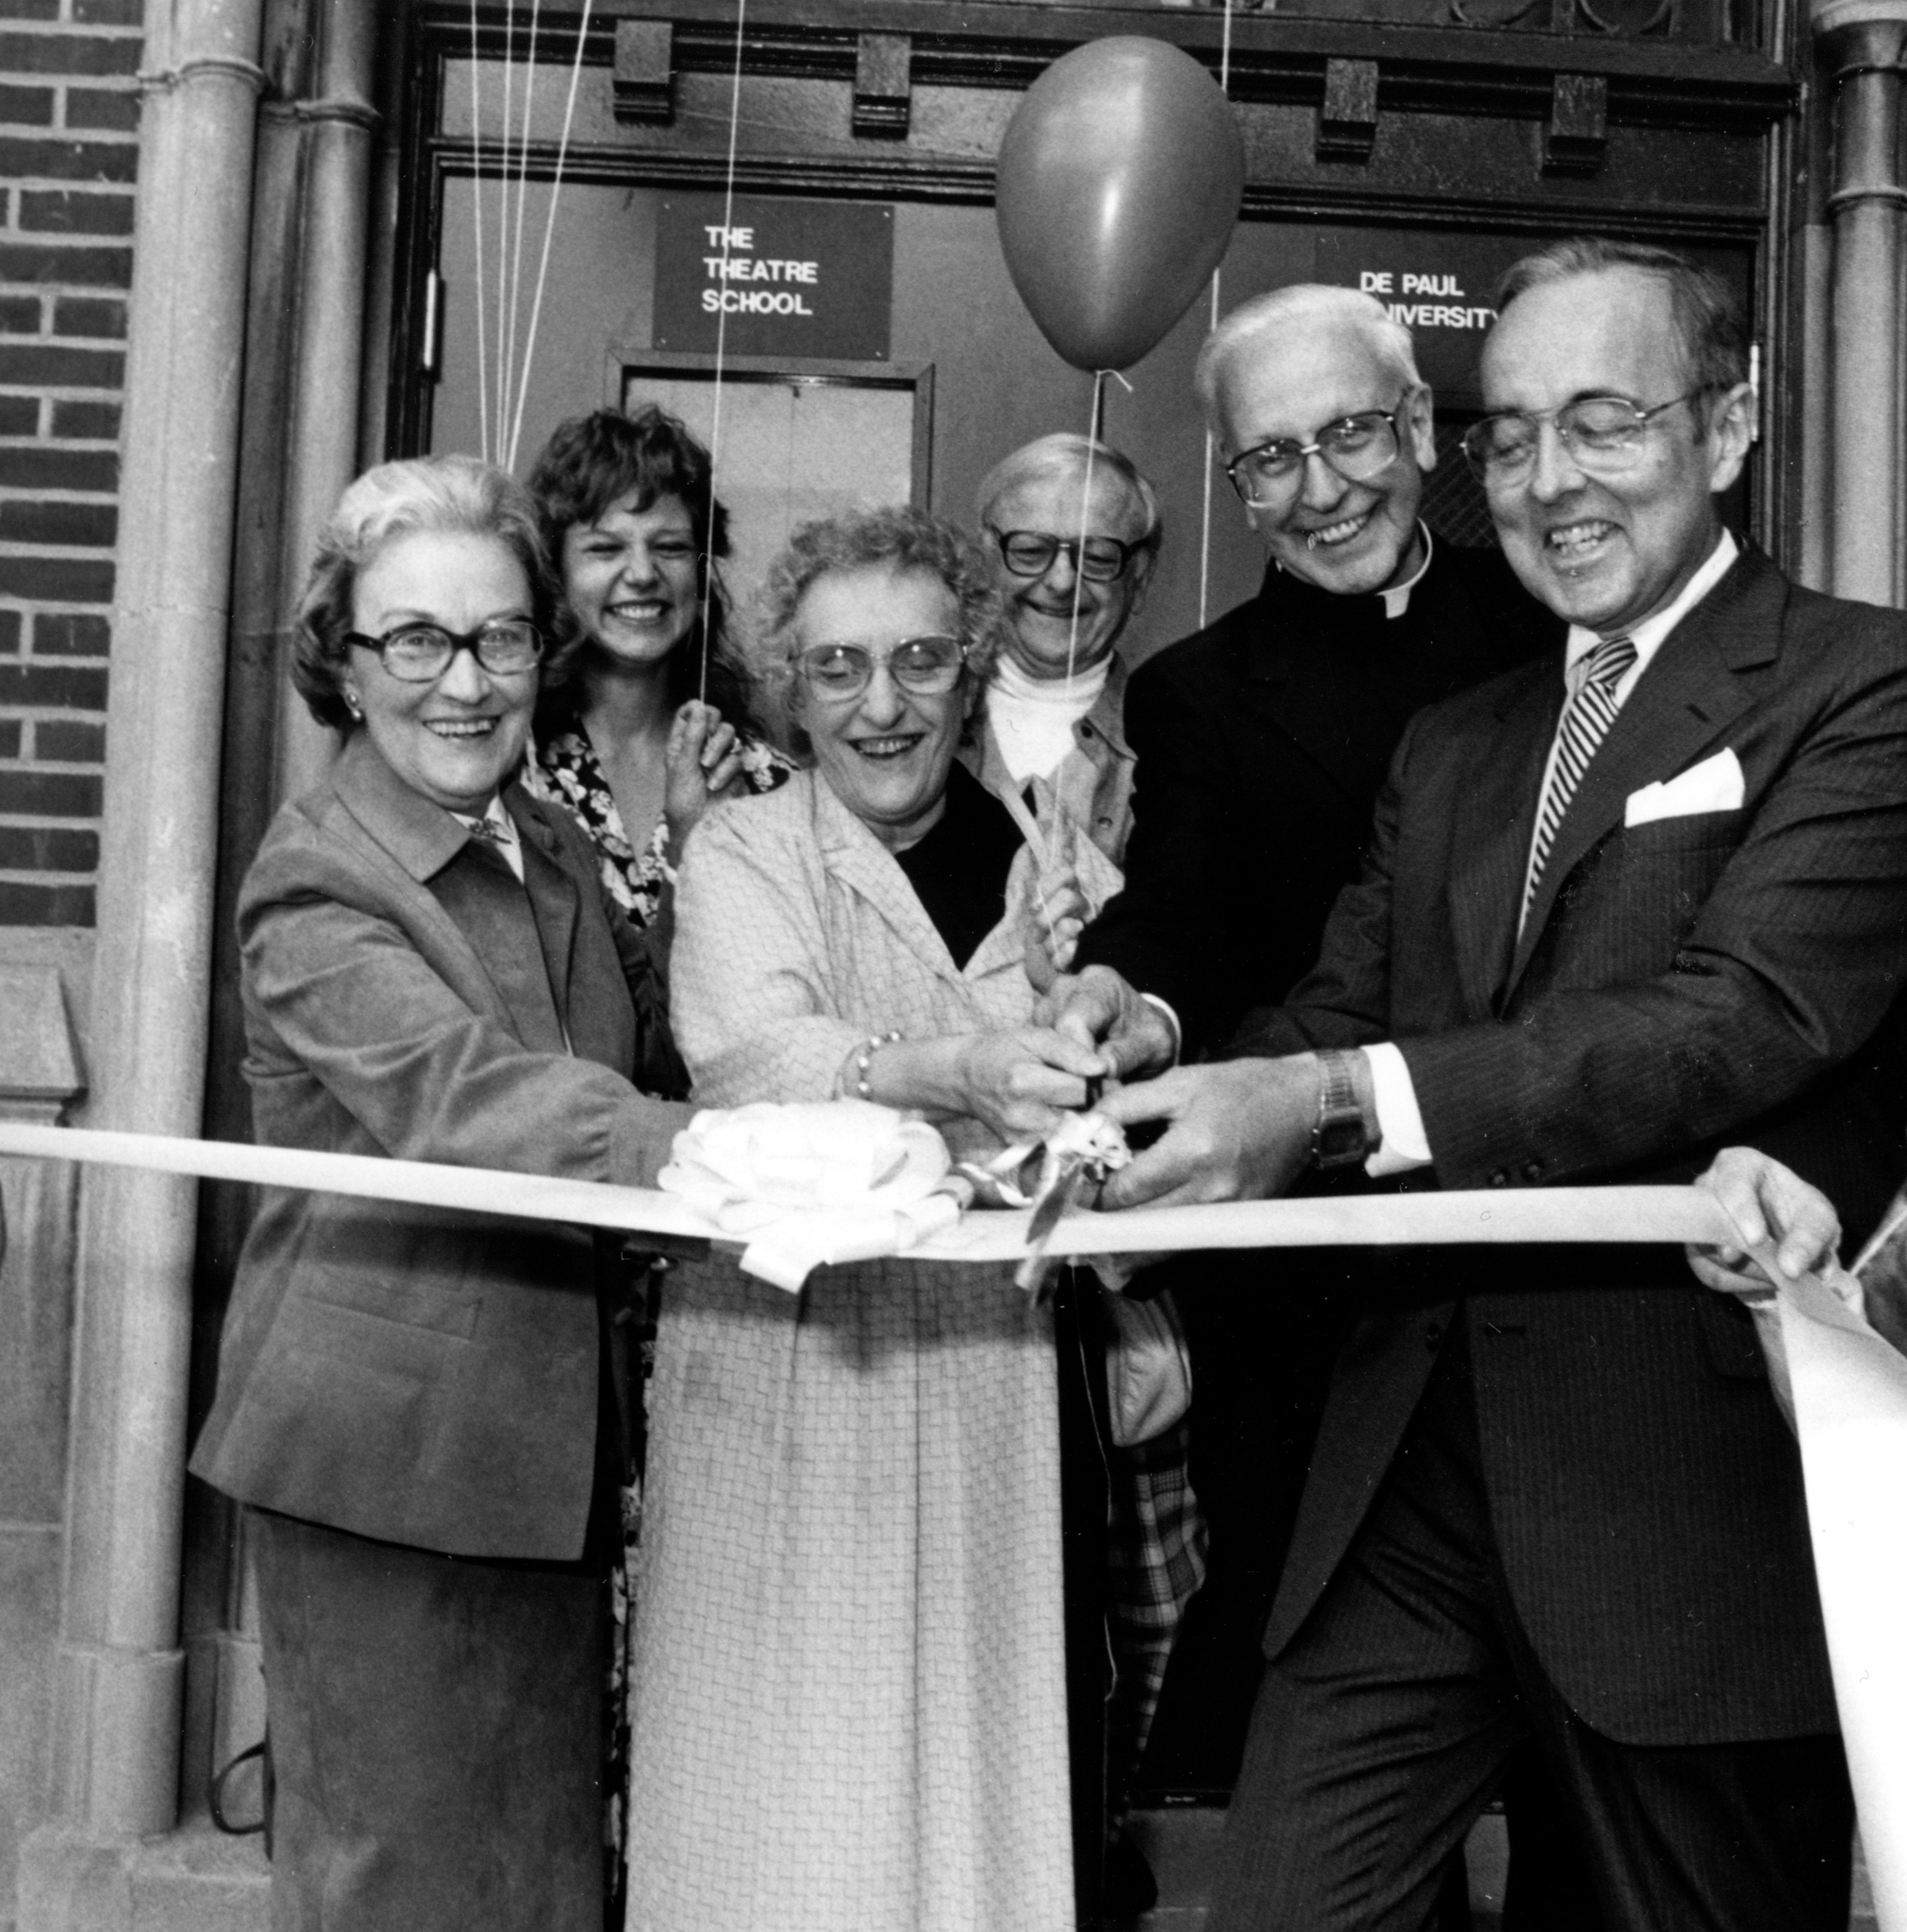 1986 ribbon cutting at The Theatre School at DePaul University